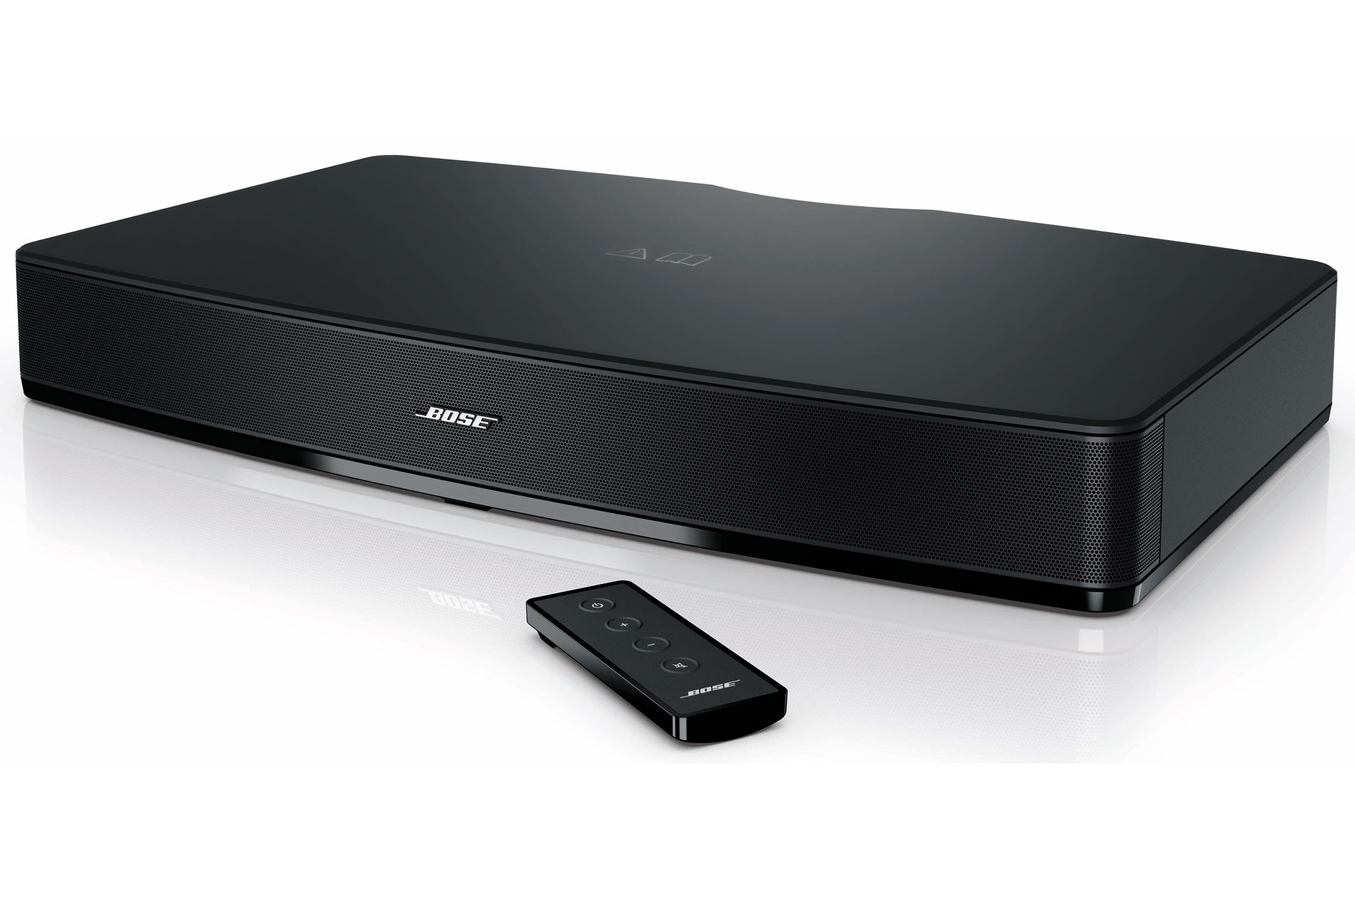 Bose Audio >> Barre de son Bose SOLO TV (8870136) | Darty